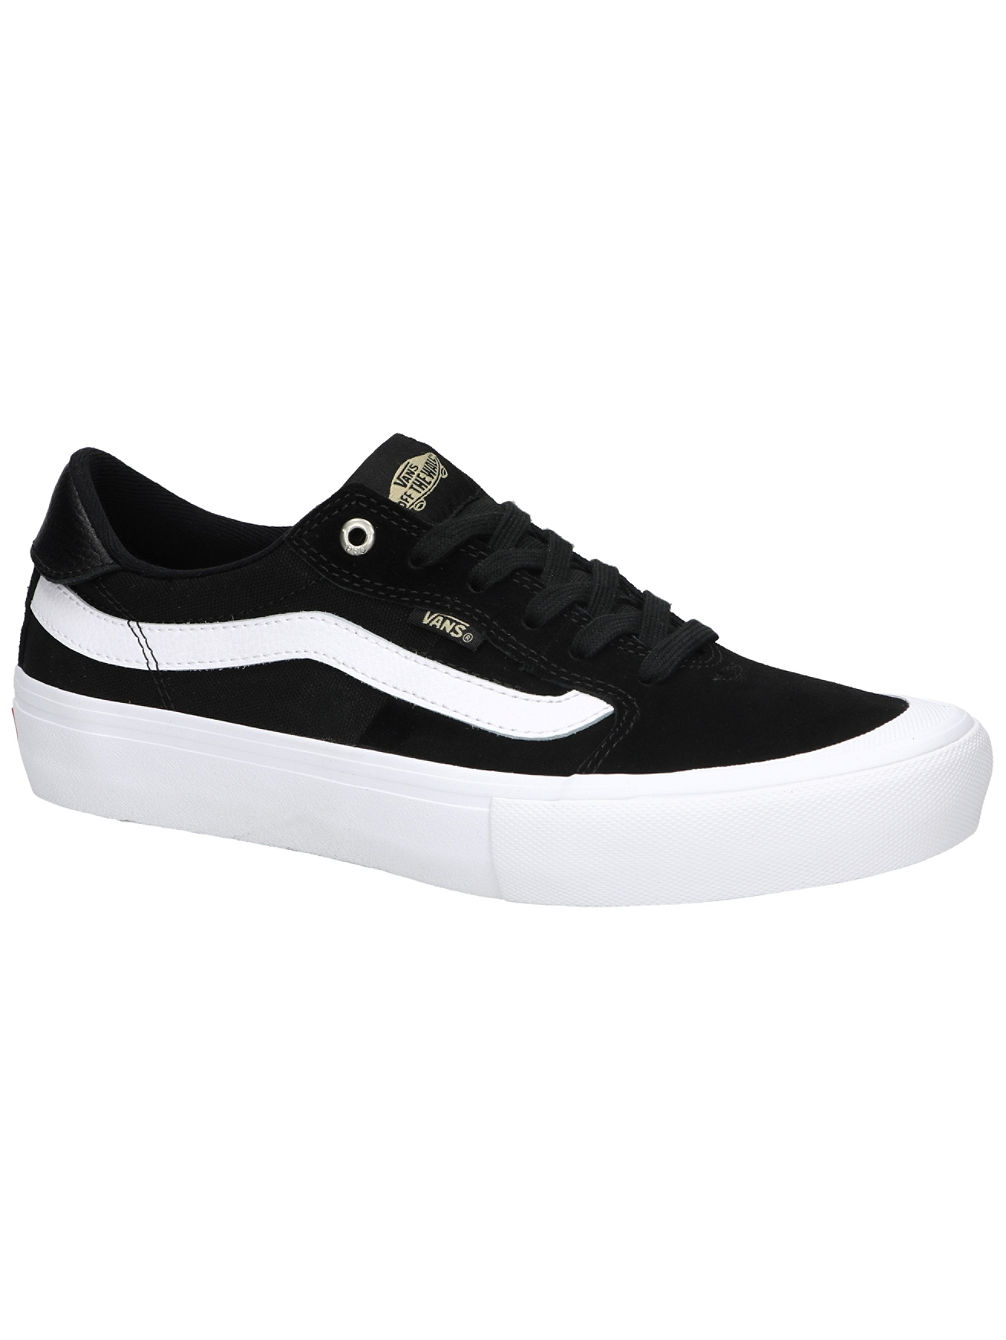 2c2bba840c92e Compra Vans Style 112 Pro Skate Shoes online na Blue Tomato